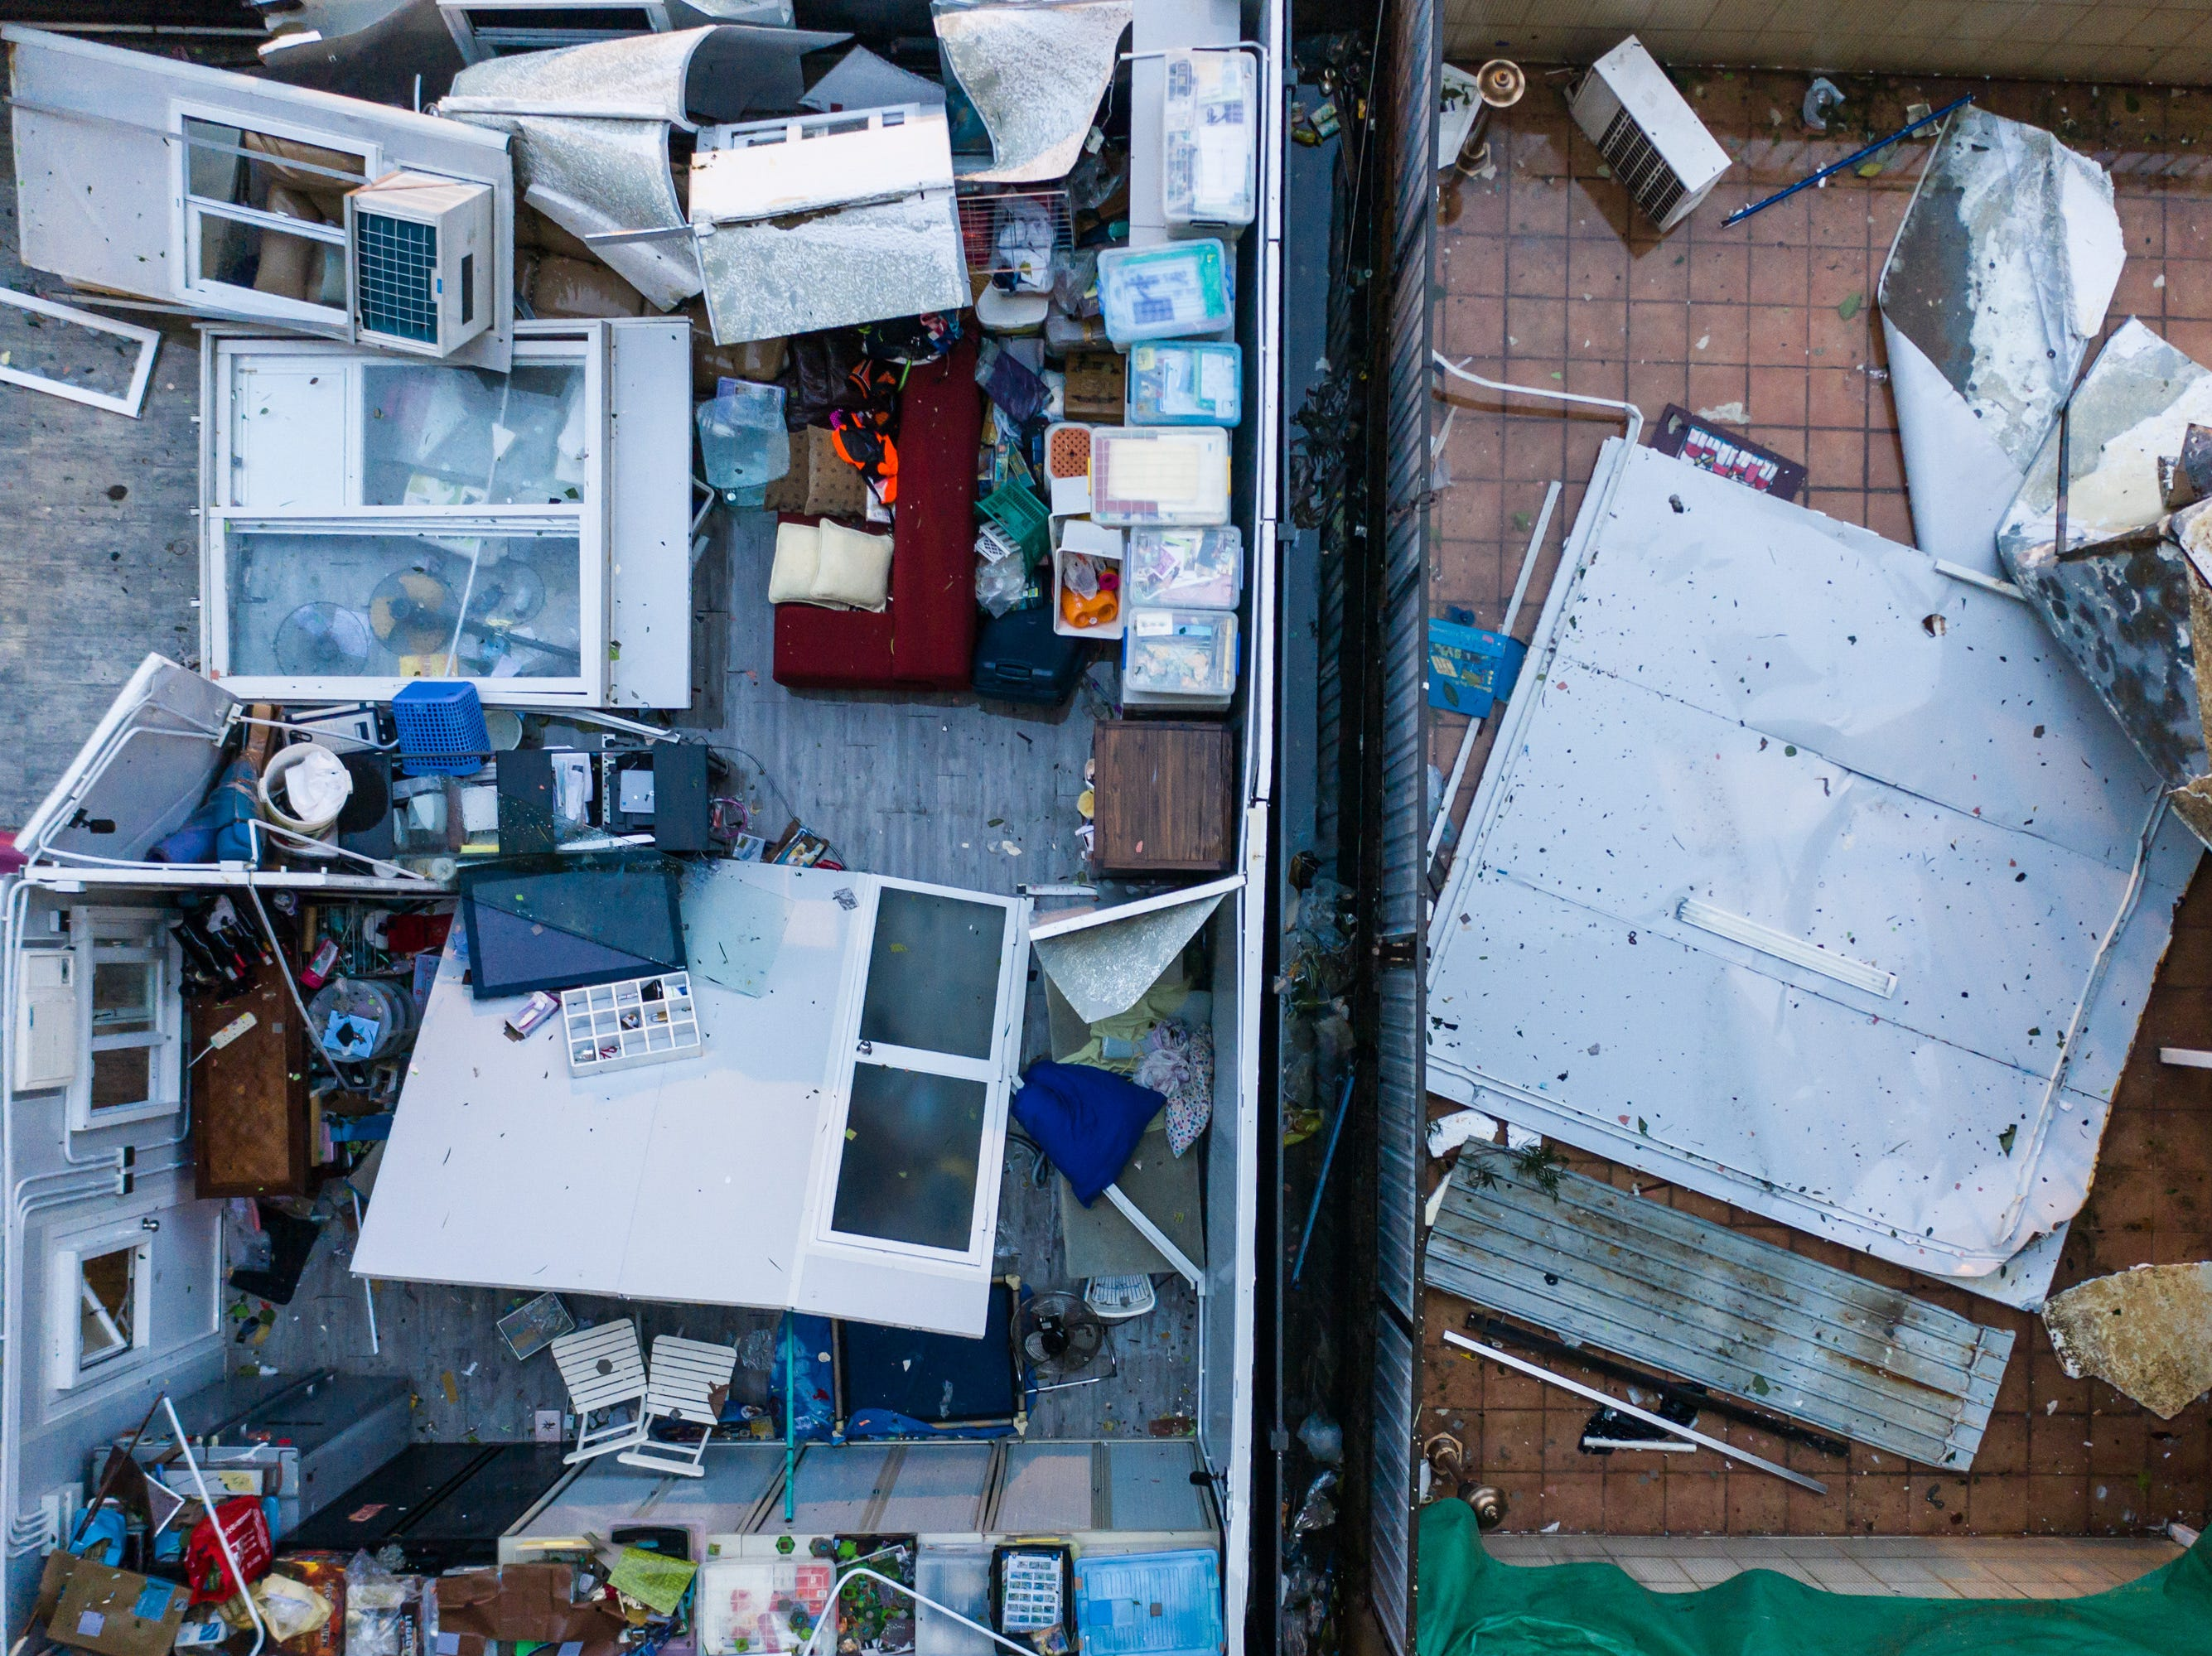 The roof of an apartment is damaged by Typhoon Mangkhuon Sept. 16, 2018 in Hong Kong.